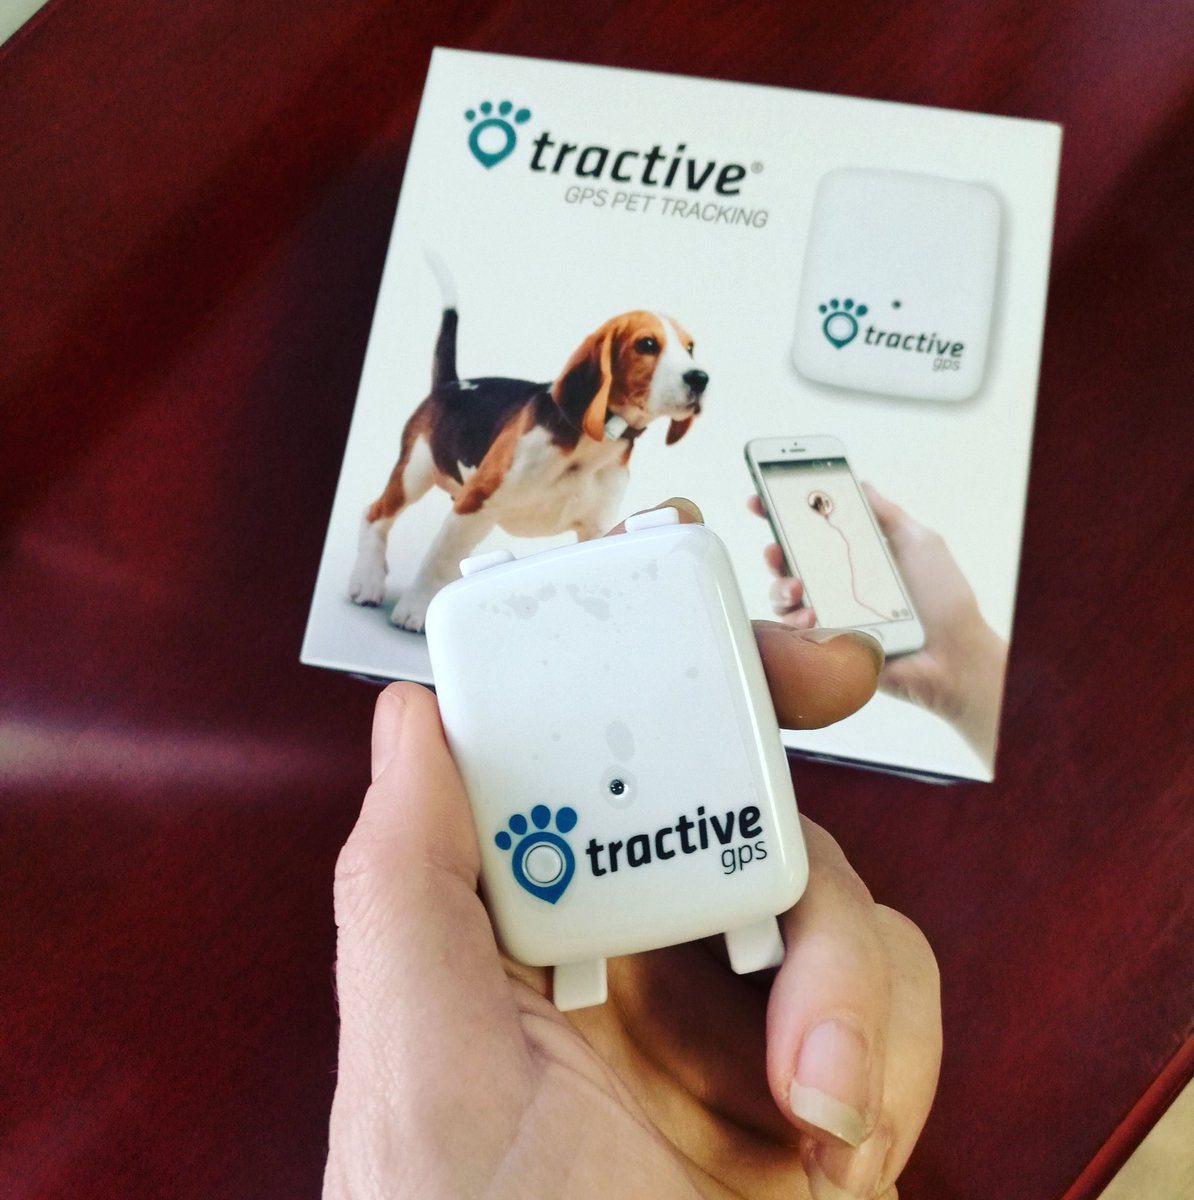 My @Tractive Internet of dogs has arrived and I'm totally geeking out about this! 😆🎉 #Tech #Technology #IoT https://t.co/qVHQ9mwXvG